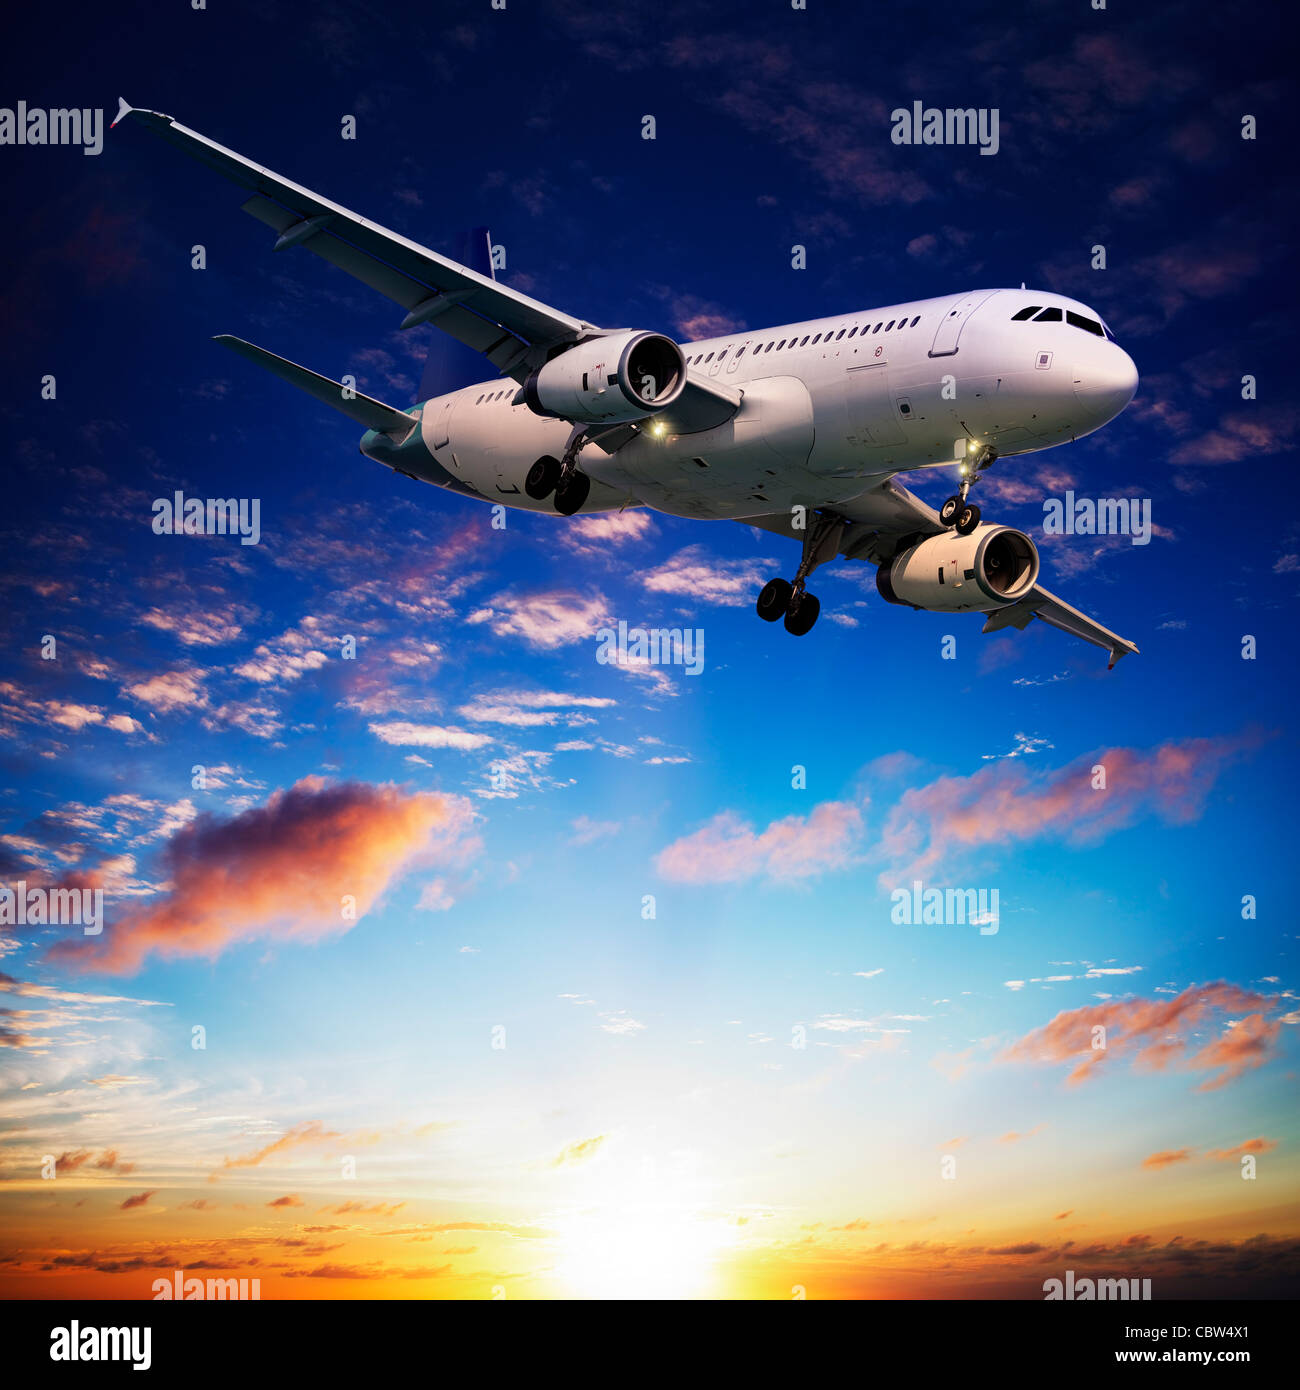 Jet plane in a sunset sky. Square composition. - Stock Image